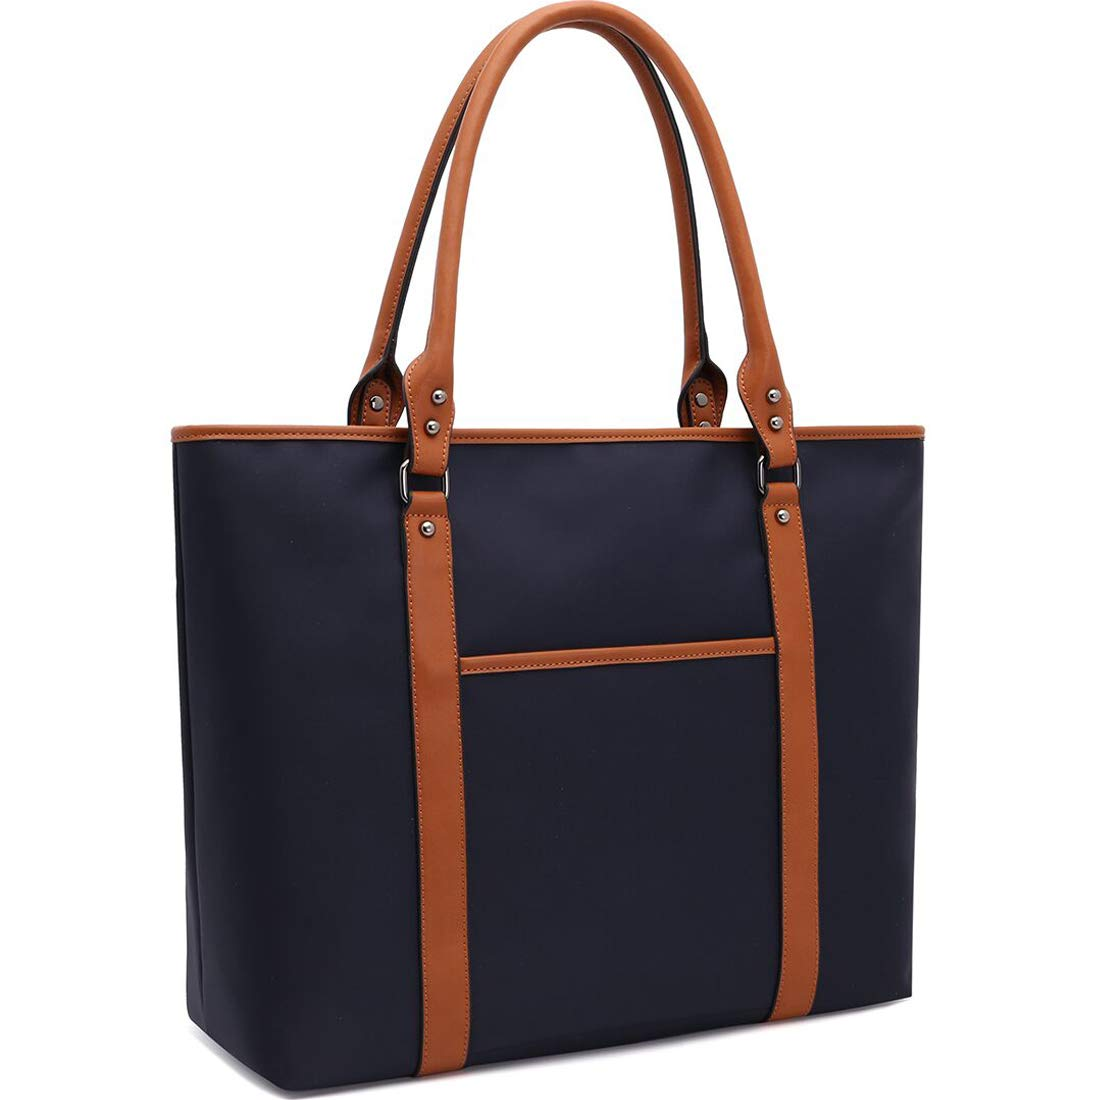 Laptop Bag 15.6 17 Inch Laptop Bag for Women Nylon Work Tote Bag Water-repellent Briefcase Large Teacher Bag Lightweight School Bags for College Students Office Ladies